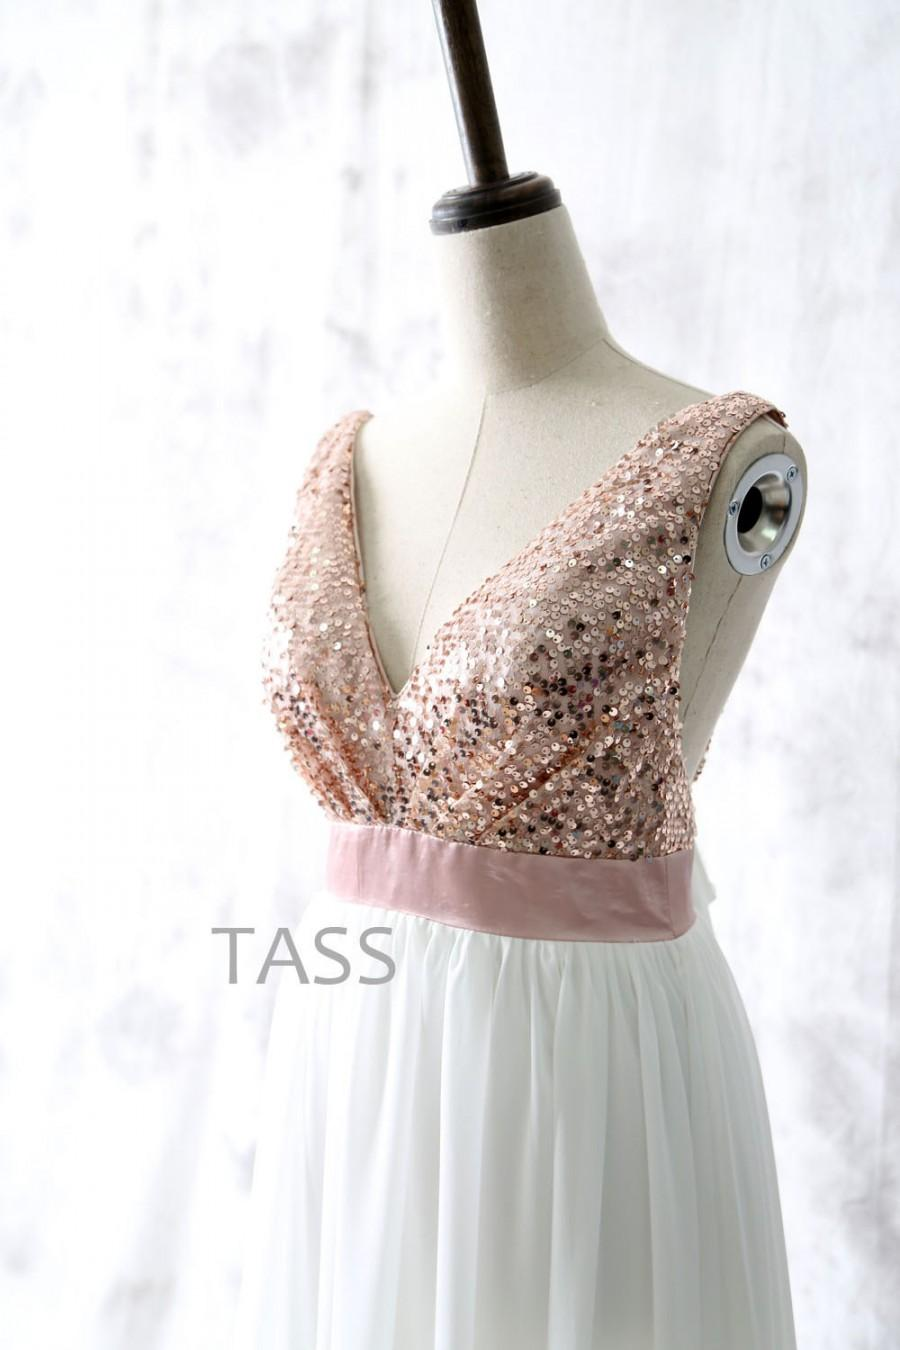 Sequin chiffon bridesmaid dresses with bow rose gold sequin sequin chiffon bridesmaid dresses with bow rose gold sequin bridesmaid gown straps v neck long sequin chiffon dress party dress ombrellifo Images